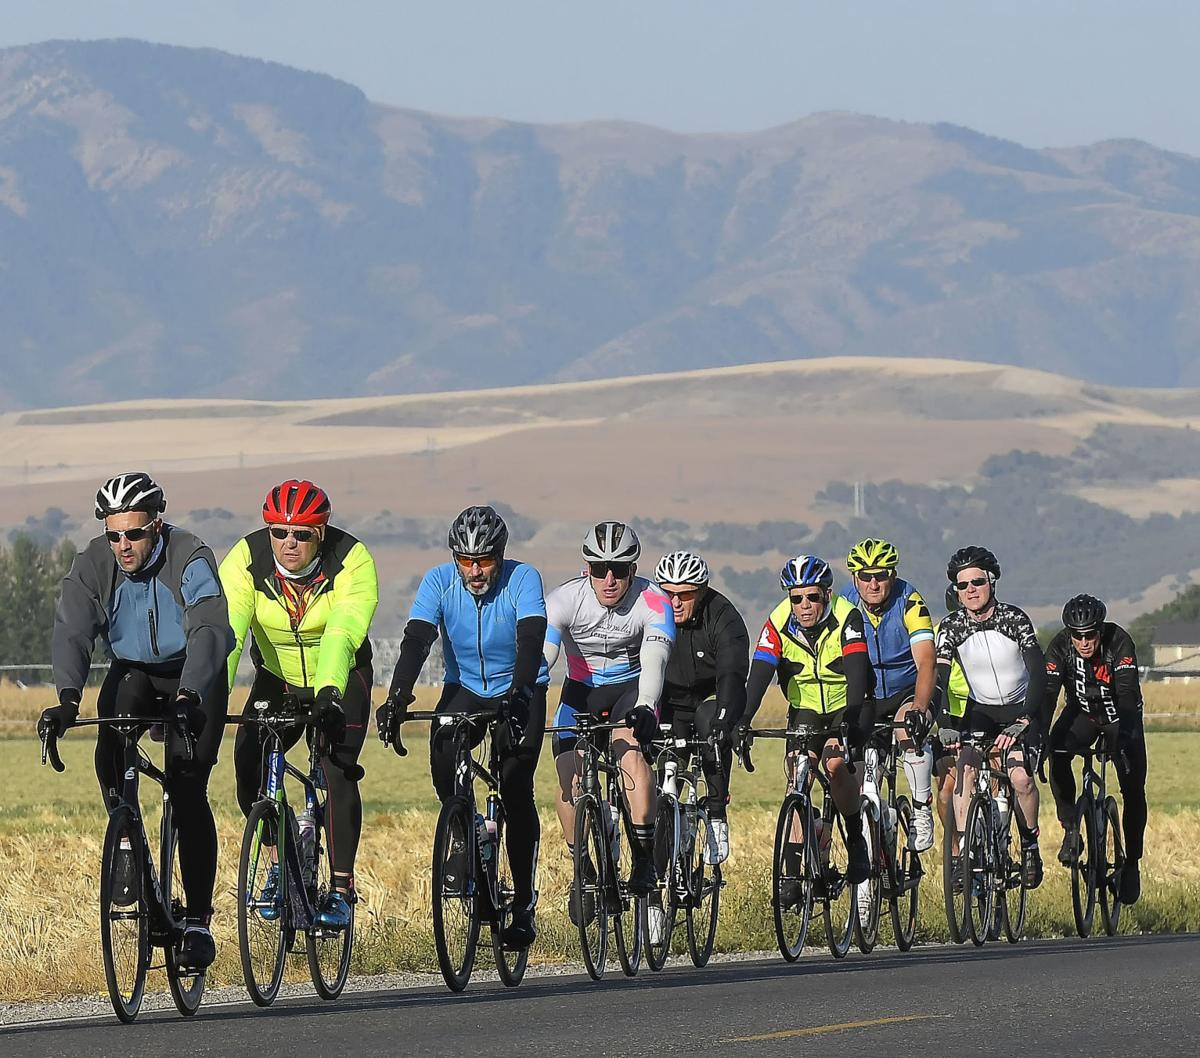 Local cyclists fare well at LoToJa